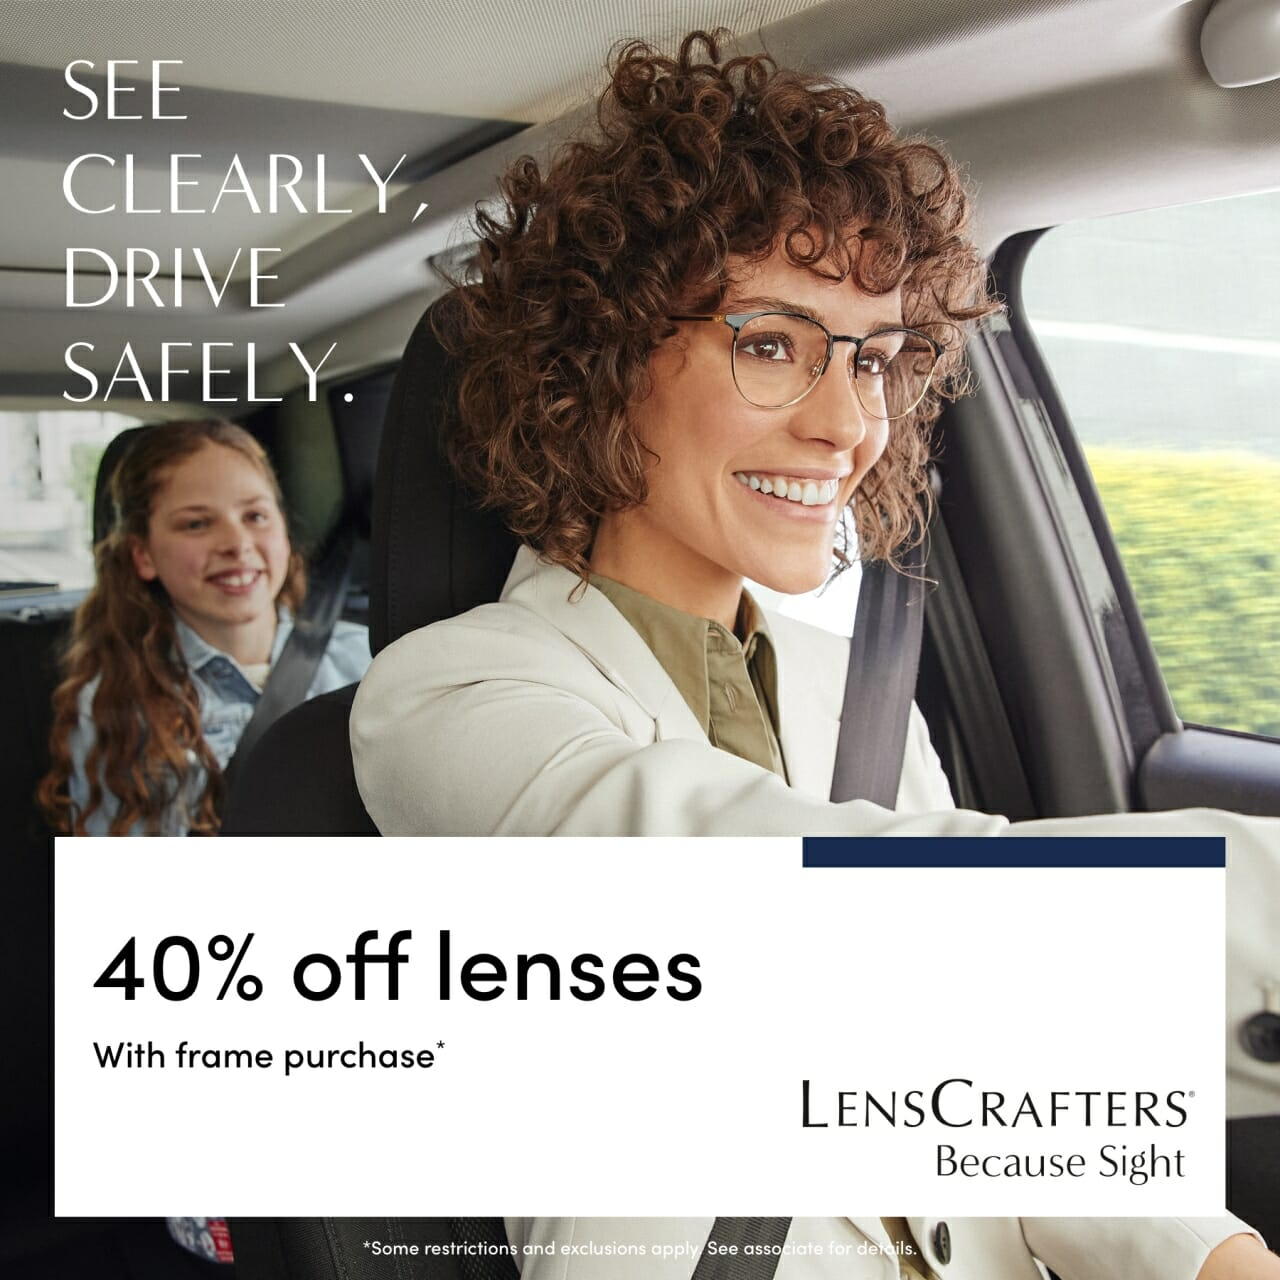 A mother wearing glasses driving a vehicle with a child in the back seat and promotional copy on the image that reads See clearly, drive safely. 40% off lenses with frame purchase.* LensCrafters - Because Sight.